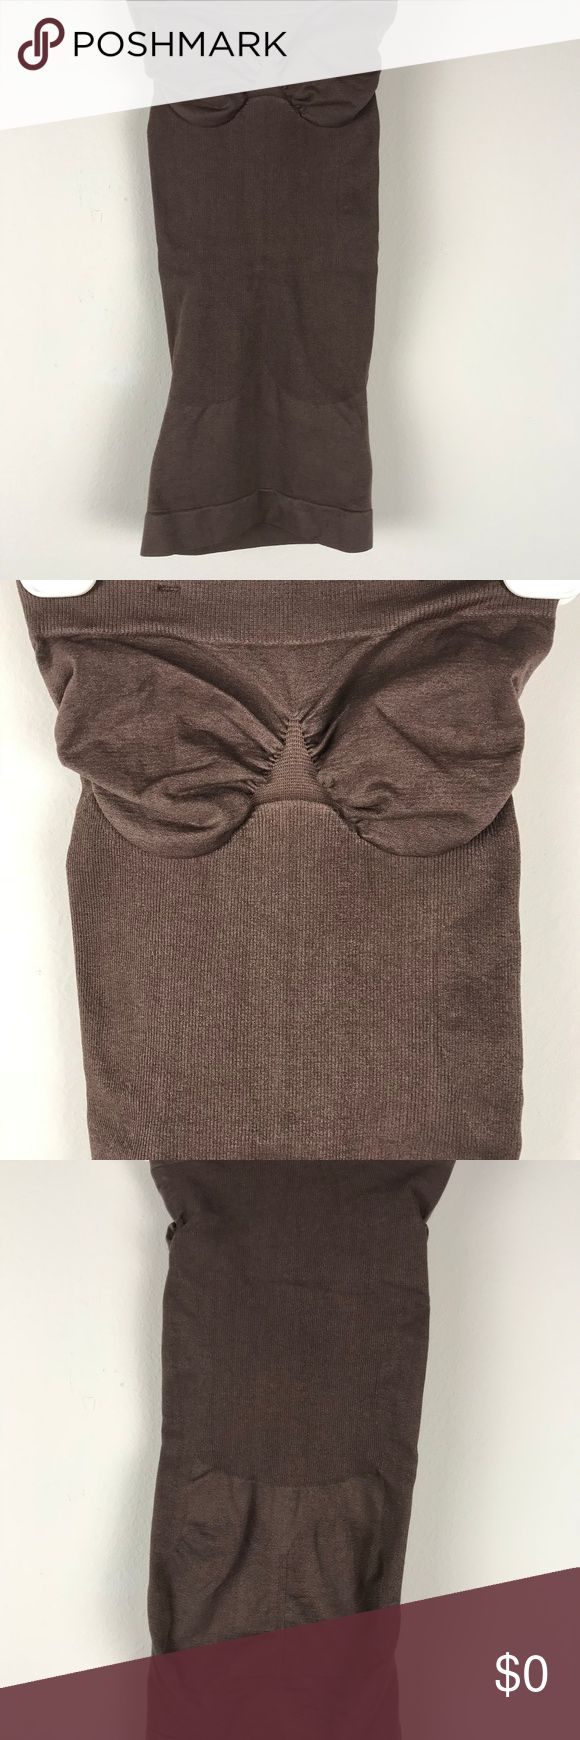 Lipodress Slimming Tube Seamless Sz S Brown Brand: Lipodress Buyer: Women Item: Shapewear Material: Stretch Fit: Tube Details: seamless Size: S Color: Brown Condition: Excellent pre-owned condition, no flaws   Location: WW24 Weight: FC 6 oz Lipodress Intimates & Sleepwear Shapewear